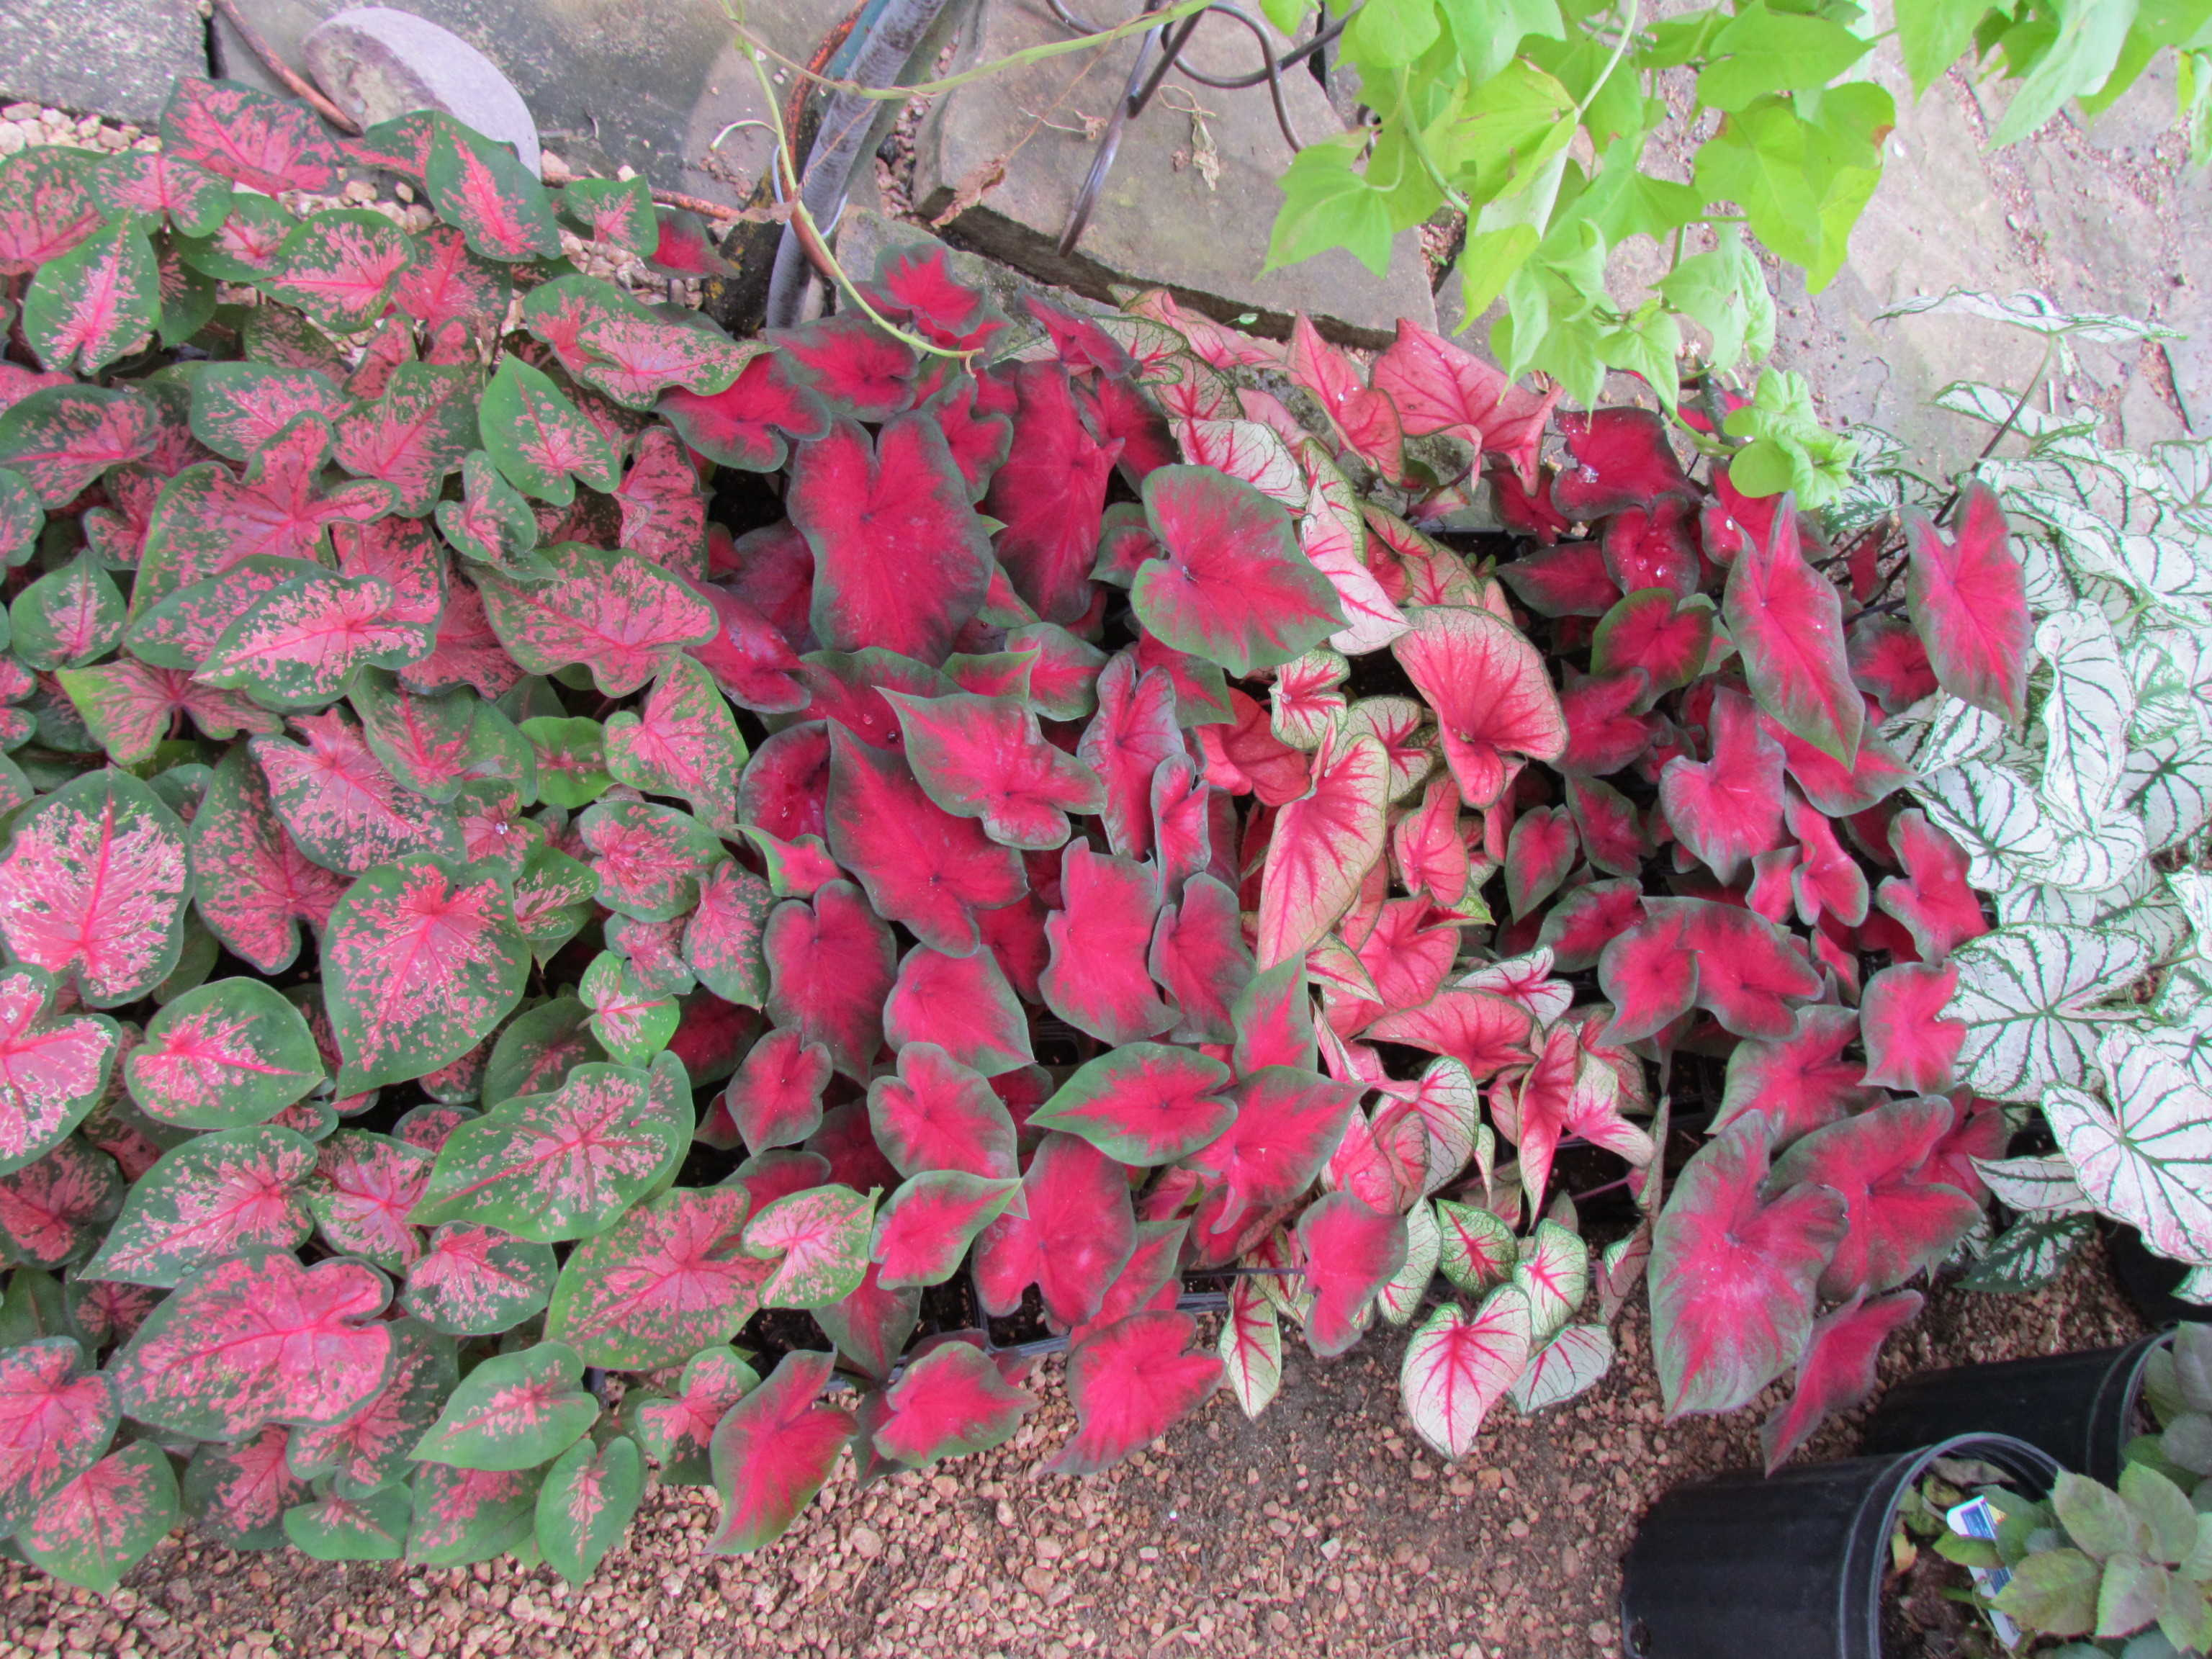 Groundcover like Caladiums and more available Madison Gardens Nursery, Spring, TX